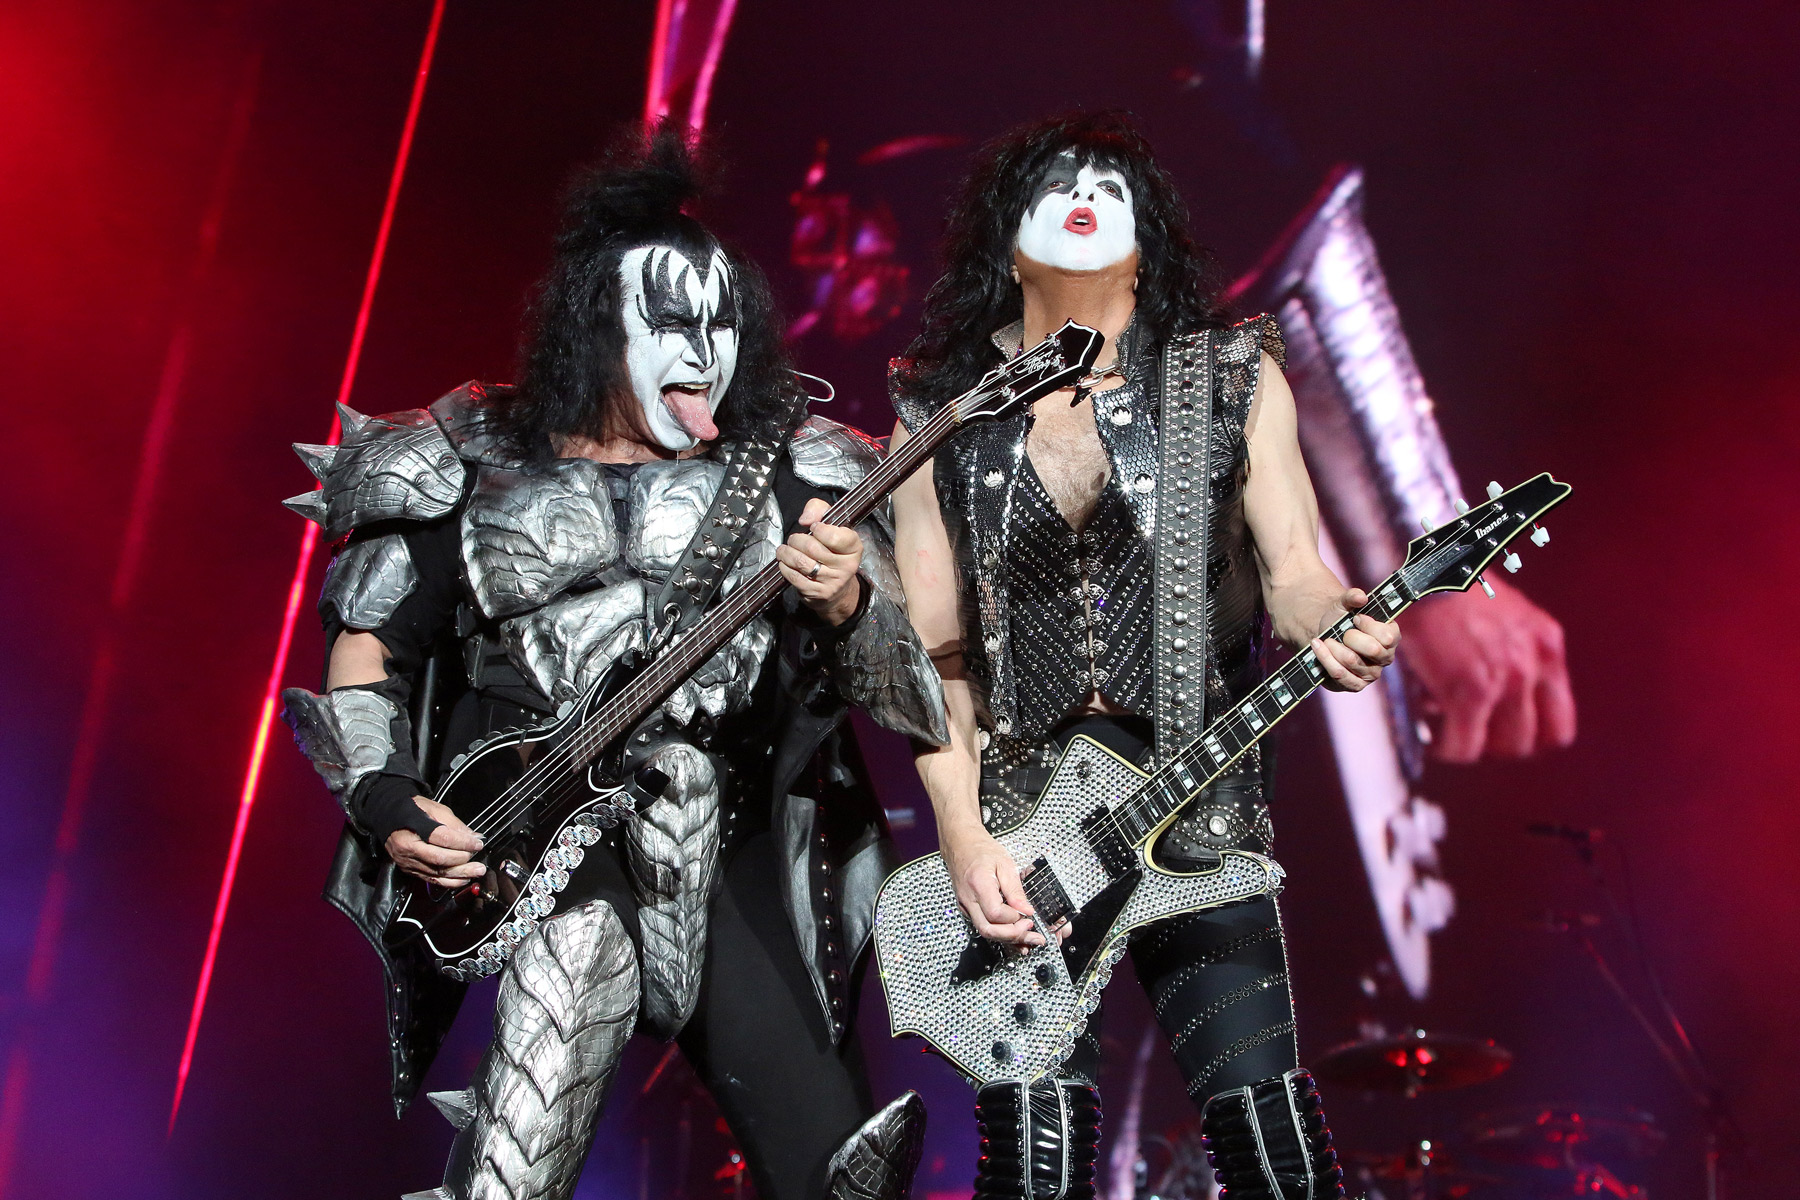 MEXICO CITY, MEXICO - MAY 3: Gene Simmons, Paul Stanley of KISS performs on stage during the Domination Festival 2019 at Foro Sol on May 3, 2019 in Mexico City, Mexico. (Photo by Adrián Monroy/Medios y Media/Getty Images)